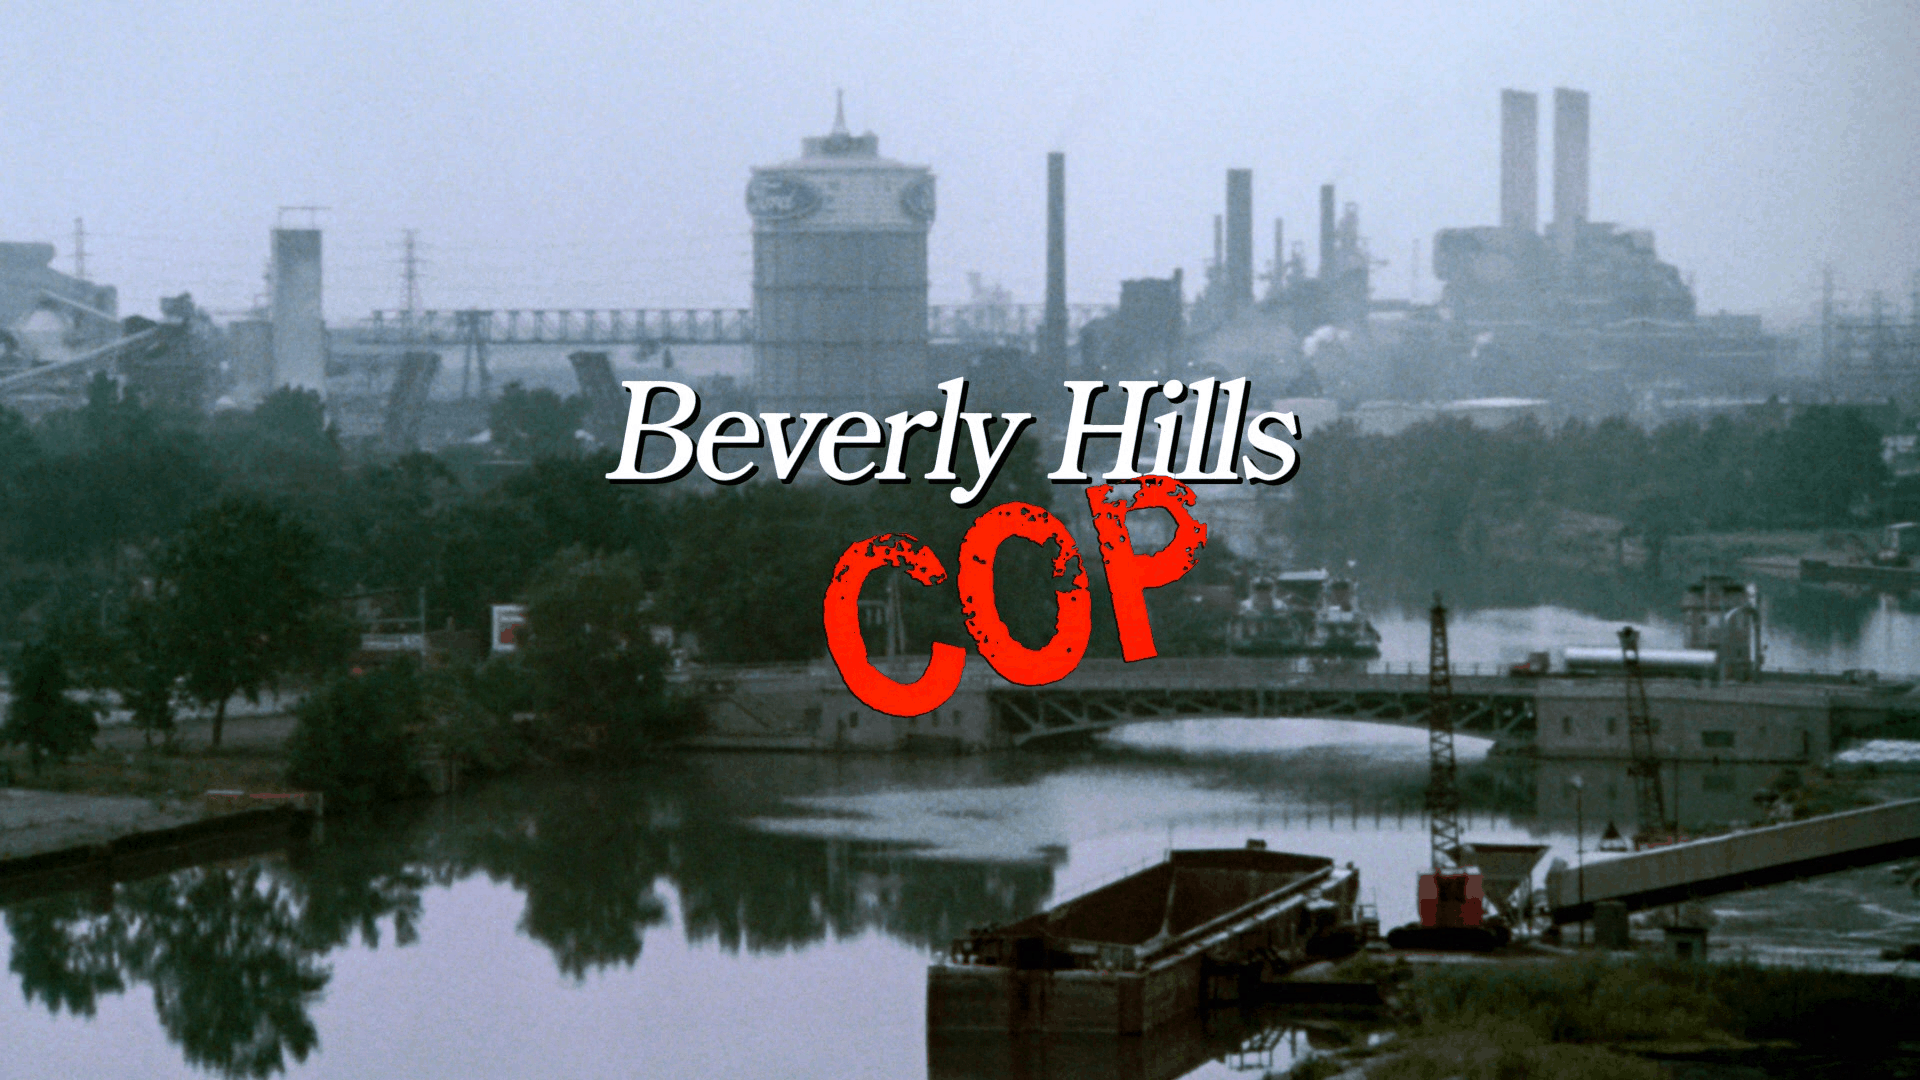 Beverly Hills Cop title